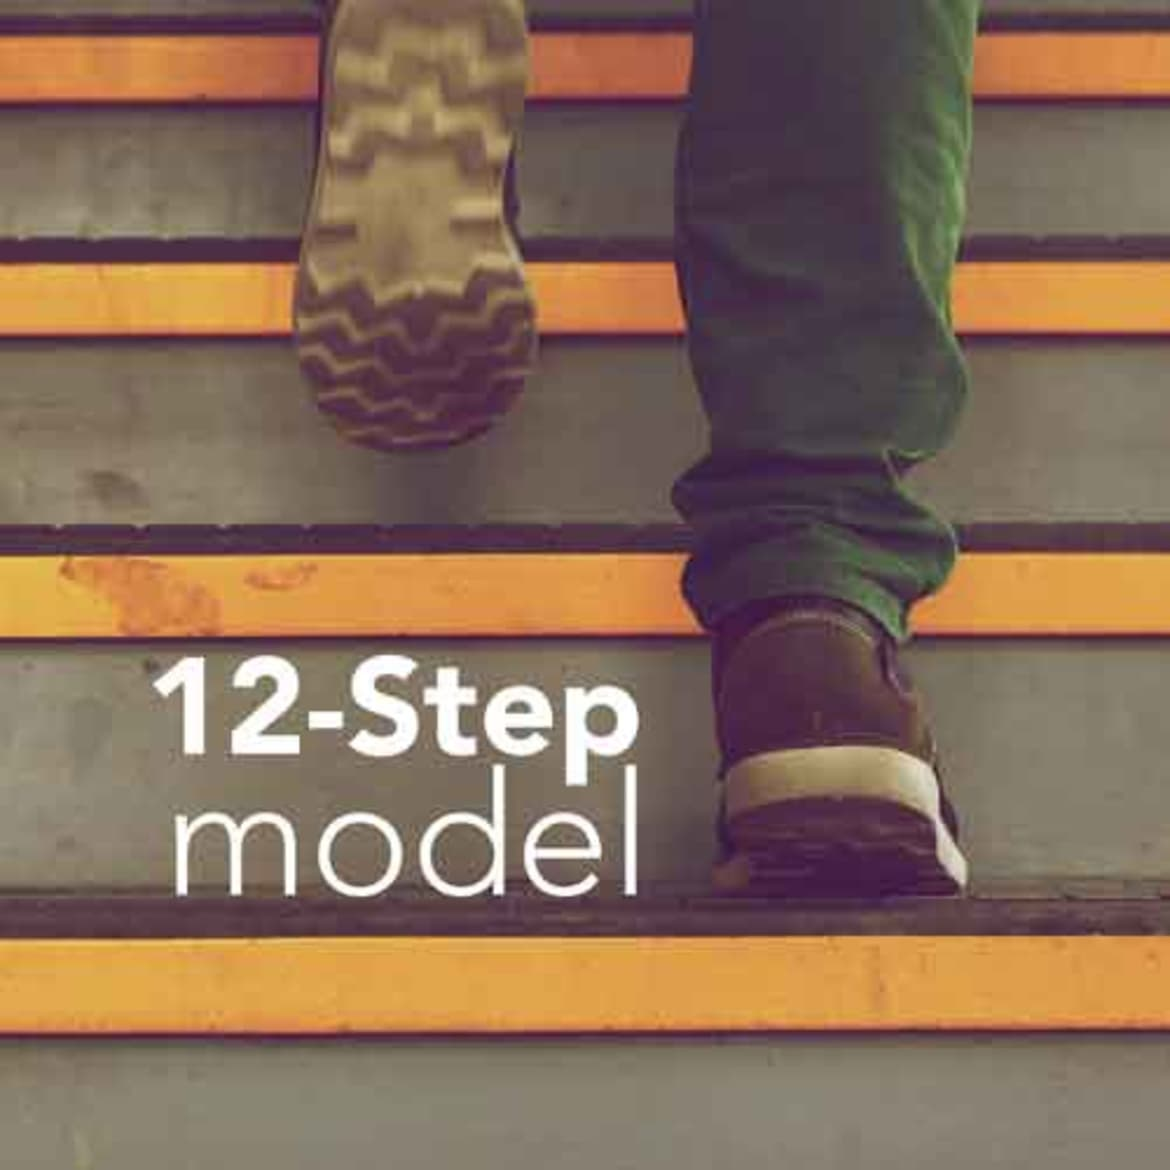 12-step recovery model